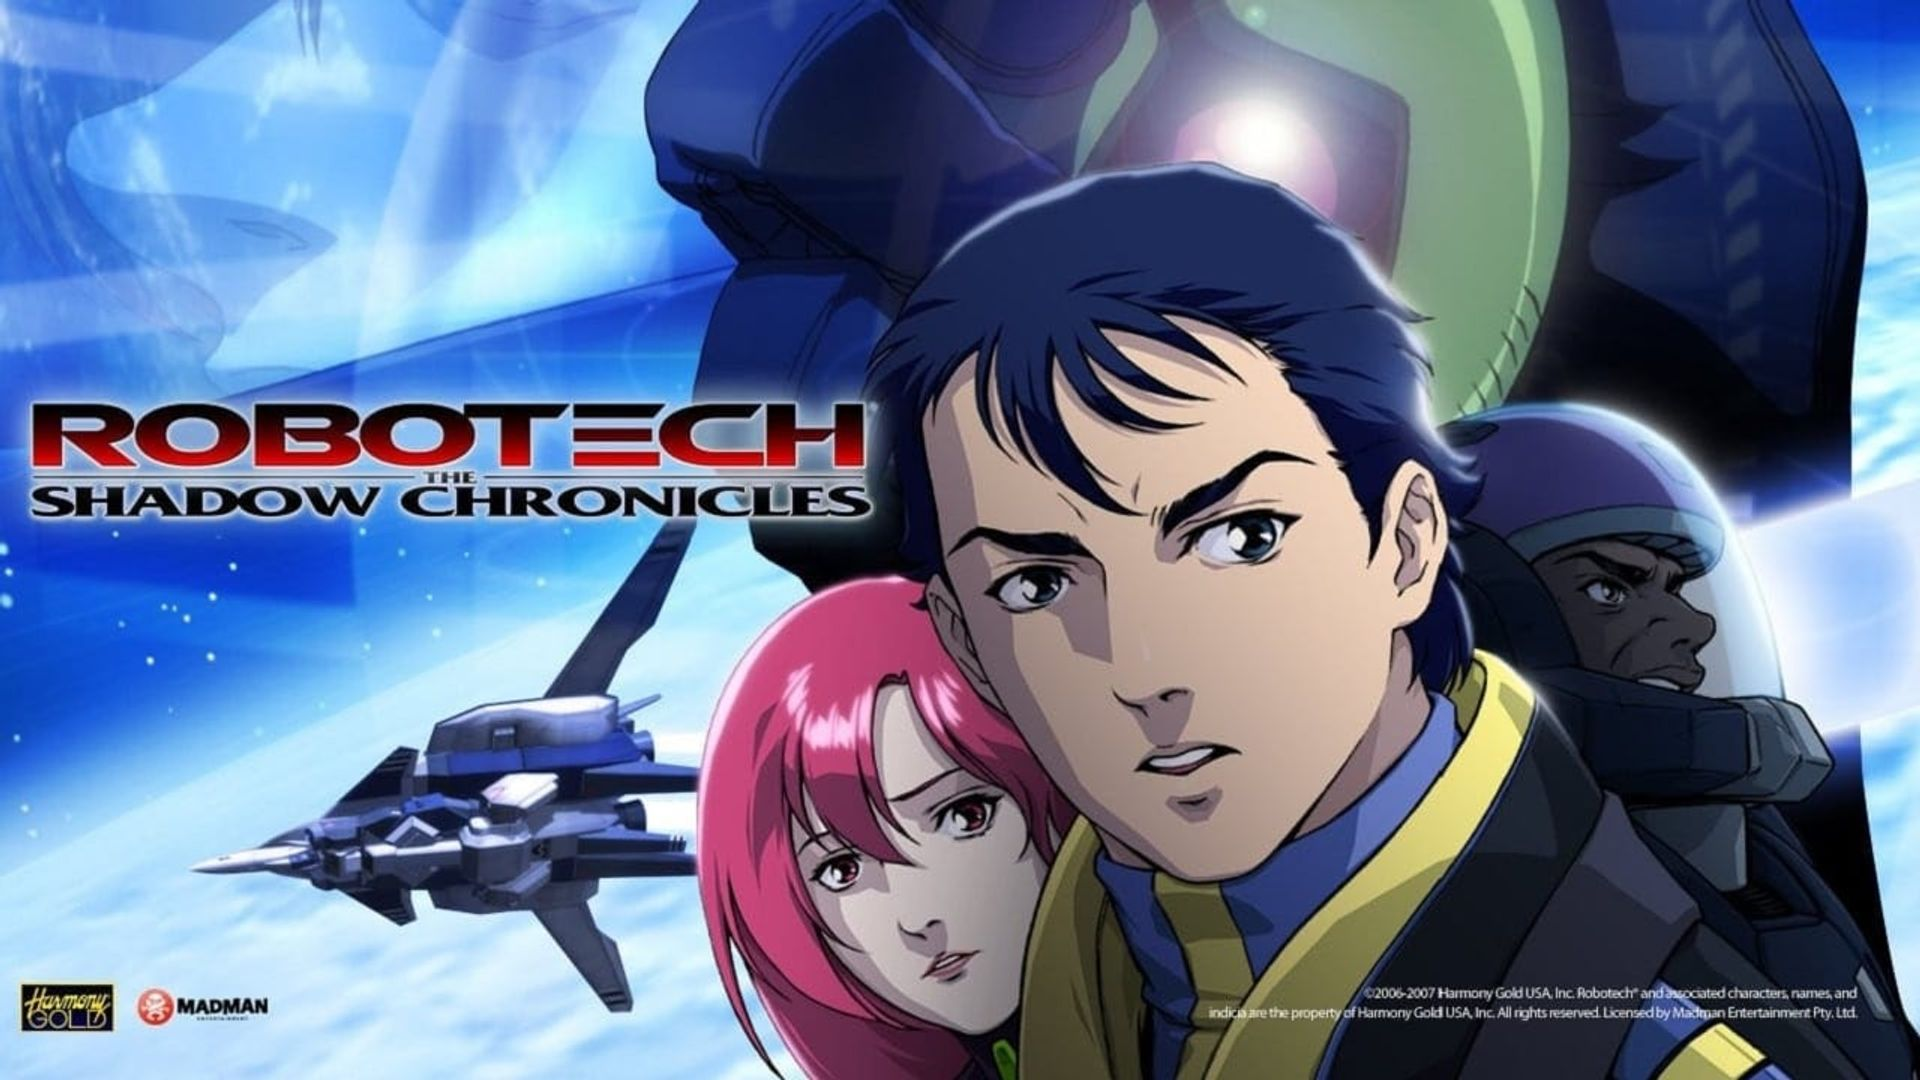 Robotech the shadow chronicles 2006 watch on prime - Robotech 1080p ...